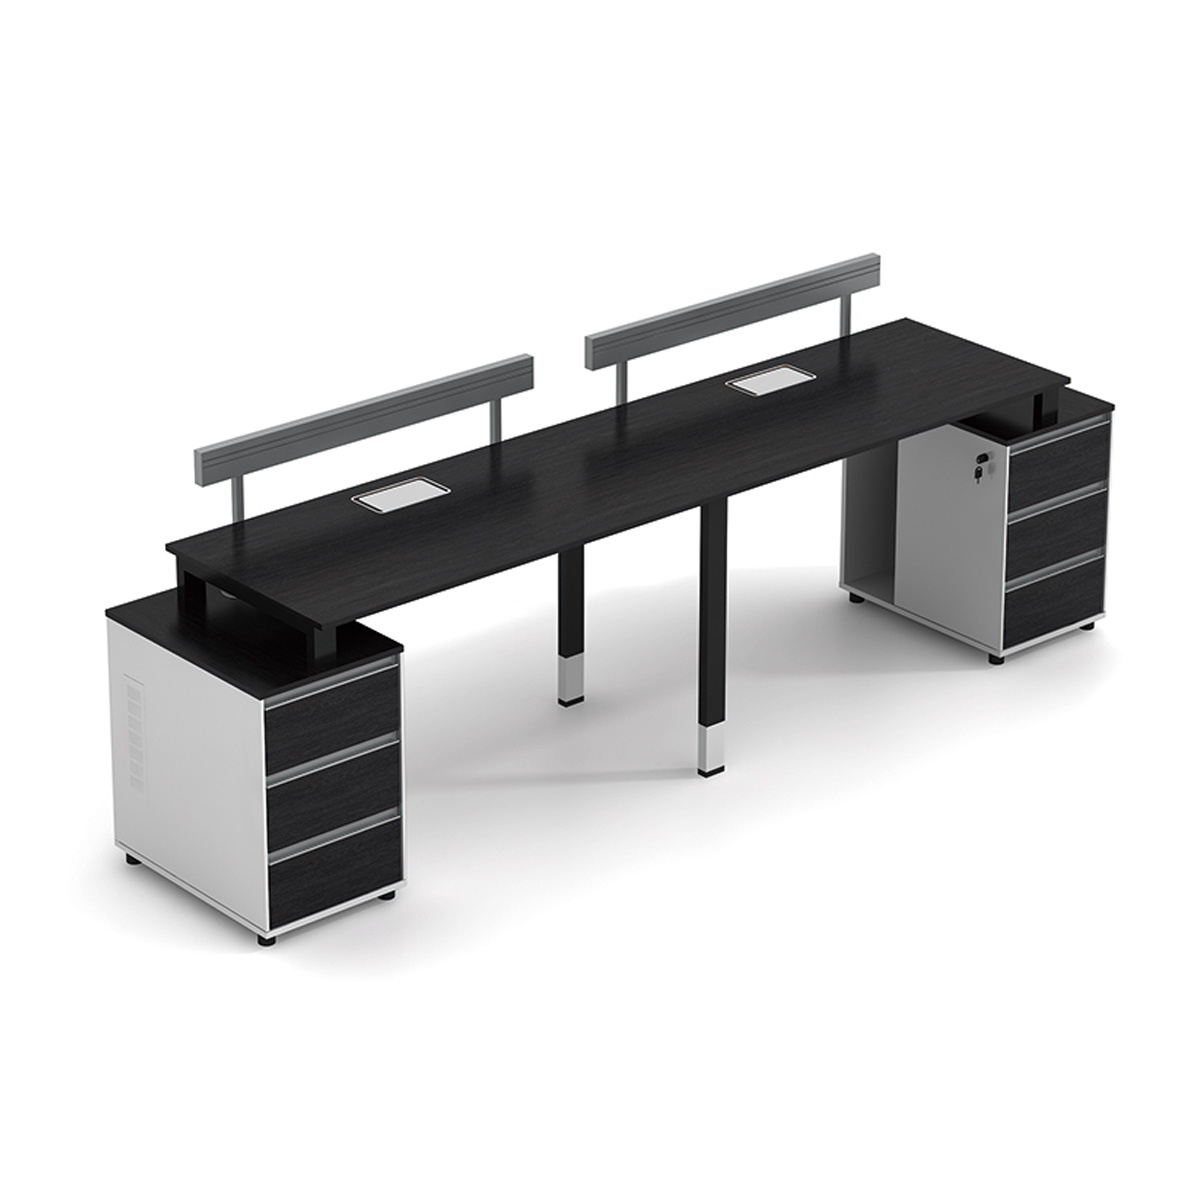 China Metal Frame Modern Design Office Desk For 2 Person Workstation With Side Cabinet China Customize Office Desks Commercial Furniture Table Pictures